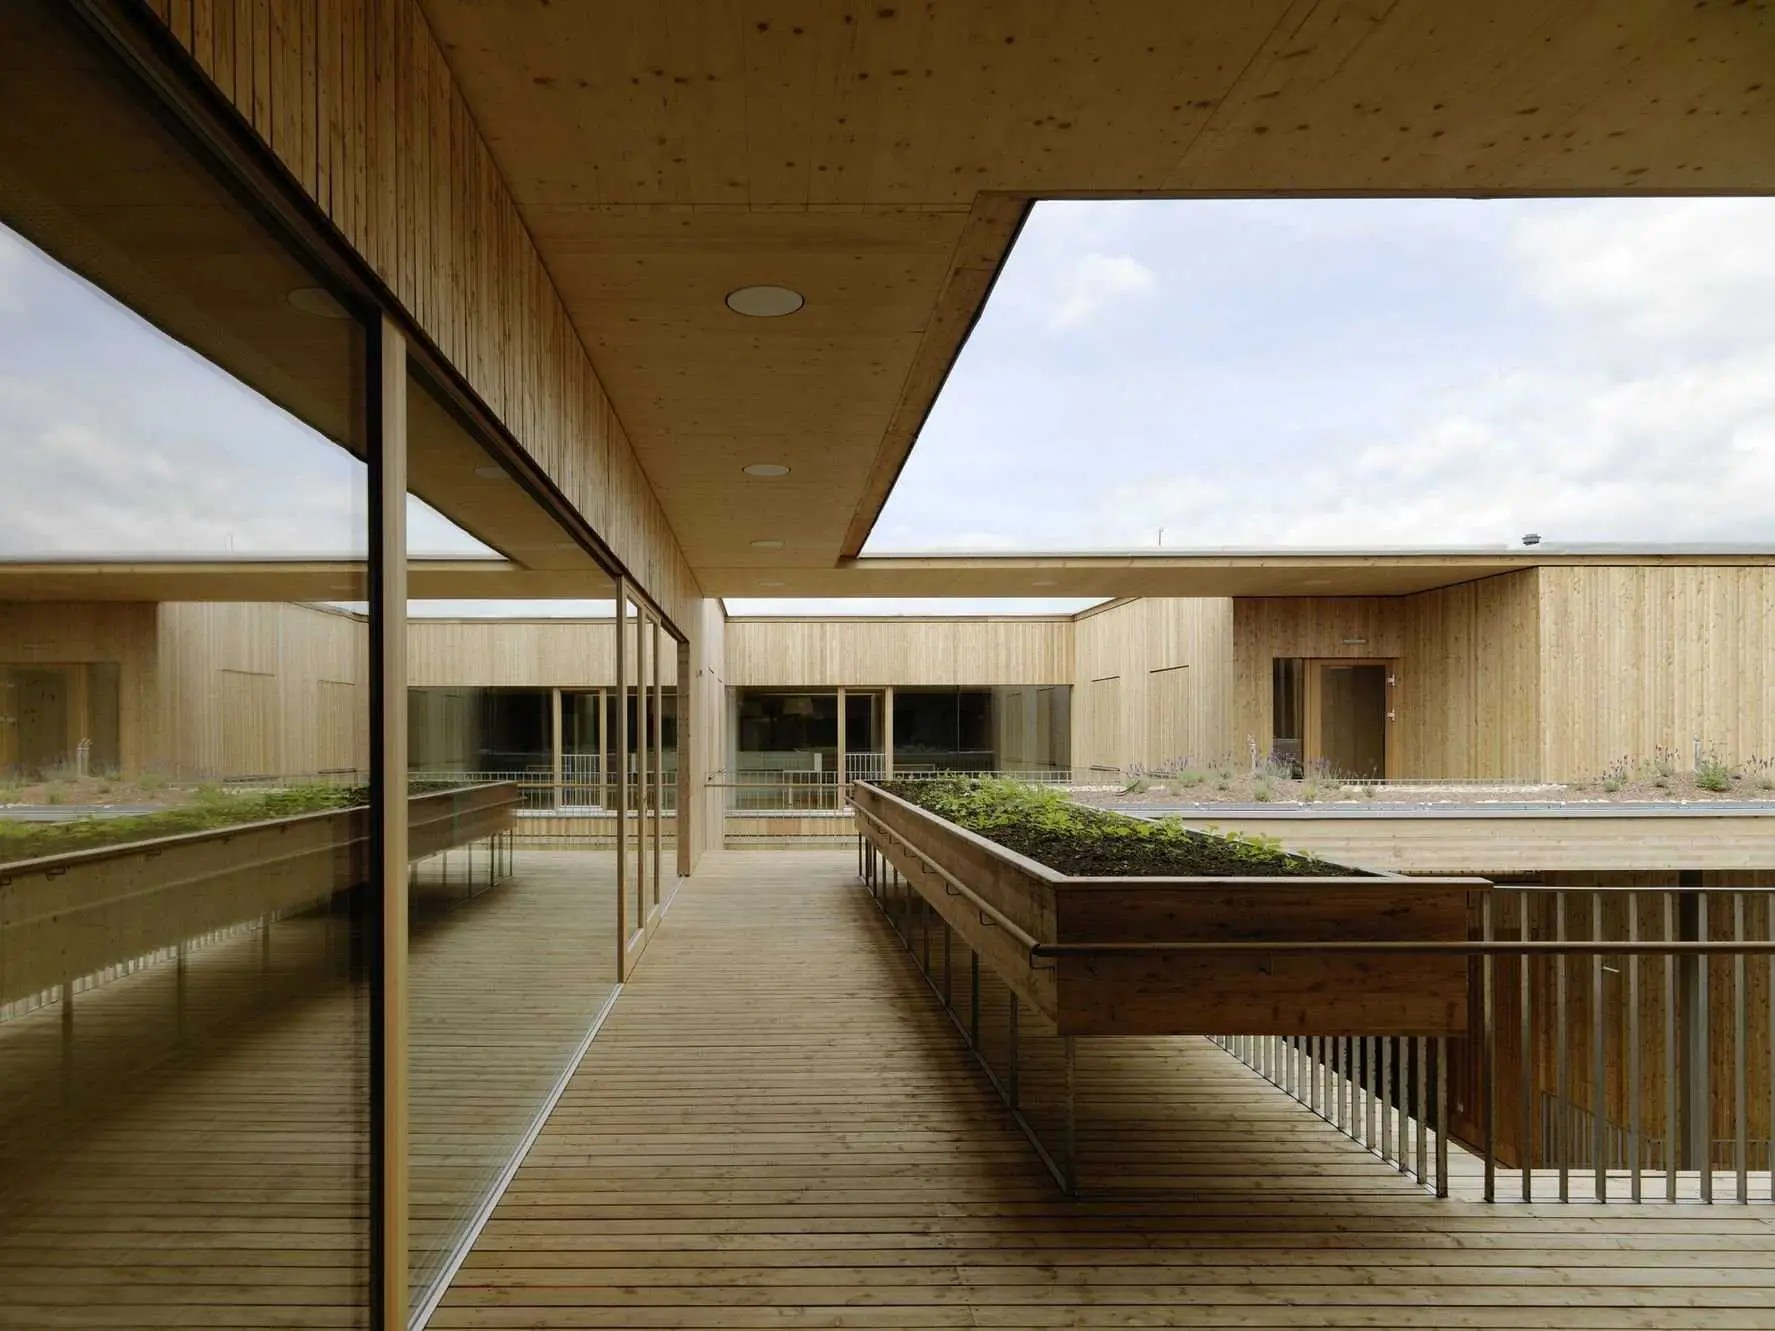 Peter Rosegger Nursing Home, Austria